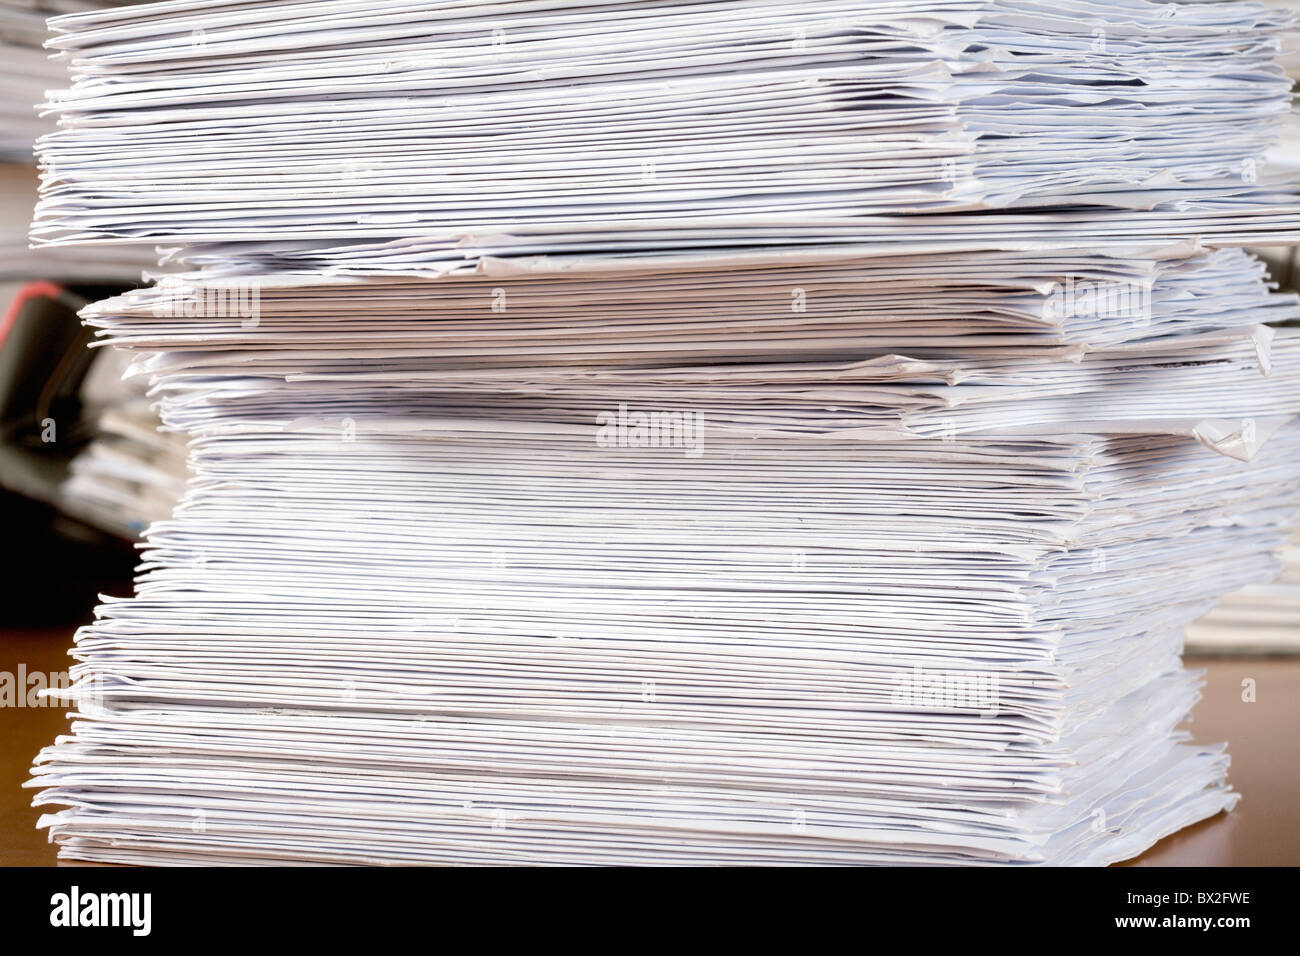 Sheets Leaves Paper Dossiers Piles Large Amounts Heaps